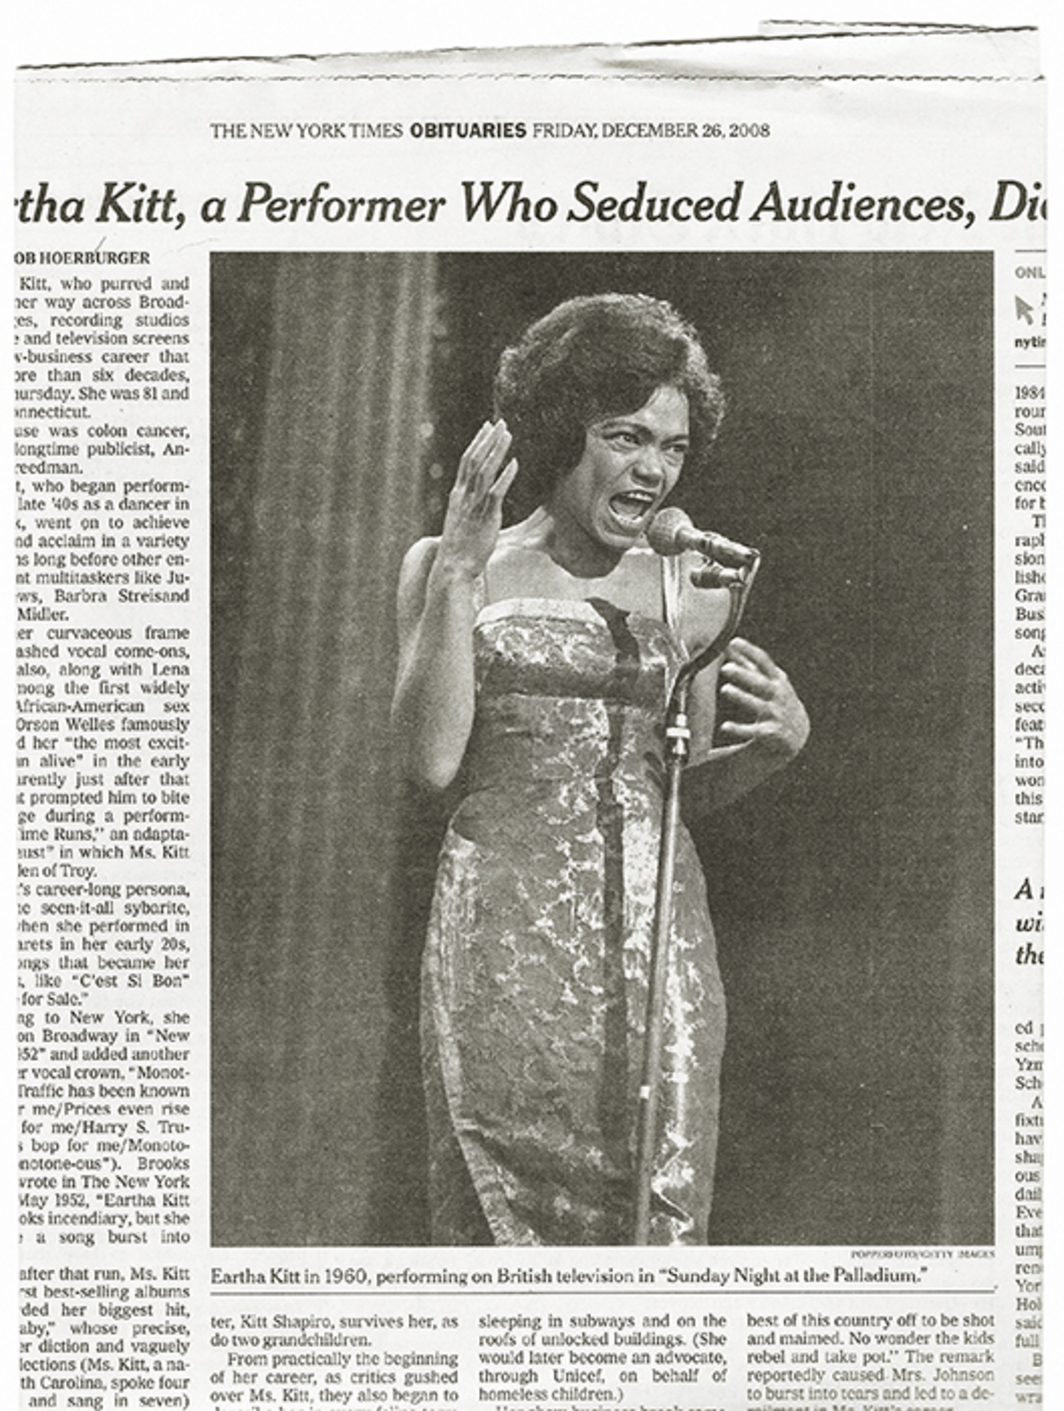 Clipping of Eartha Kitt's obituary in the New York Times, December 26, 2008.